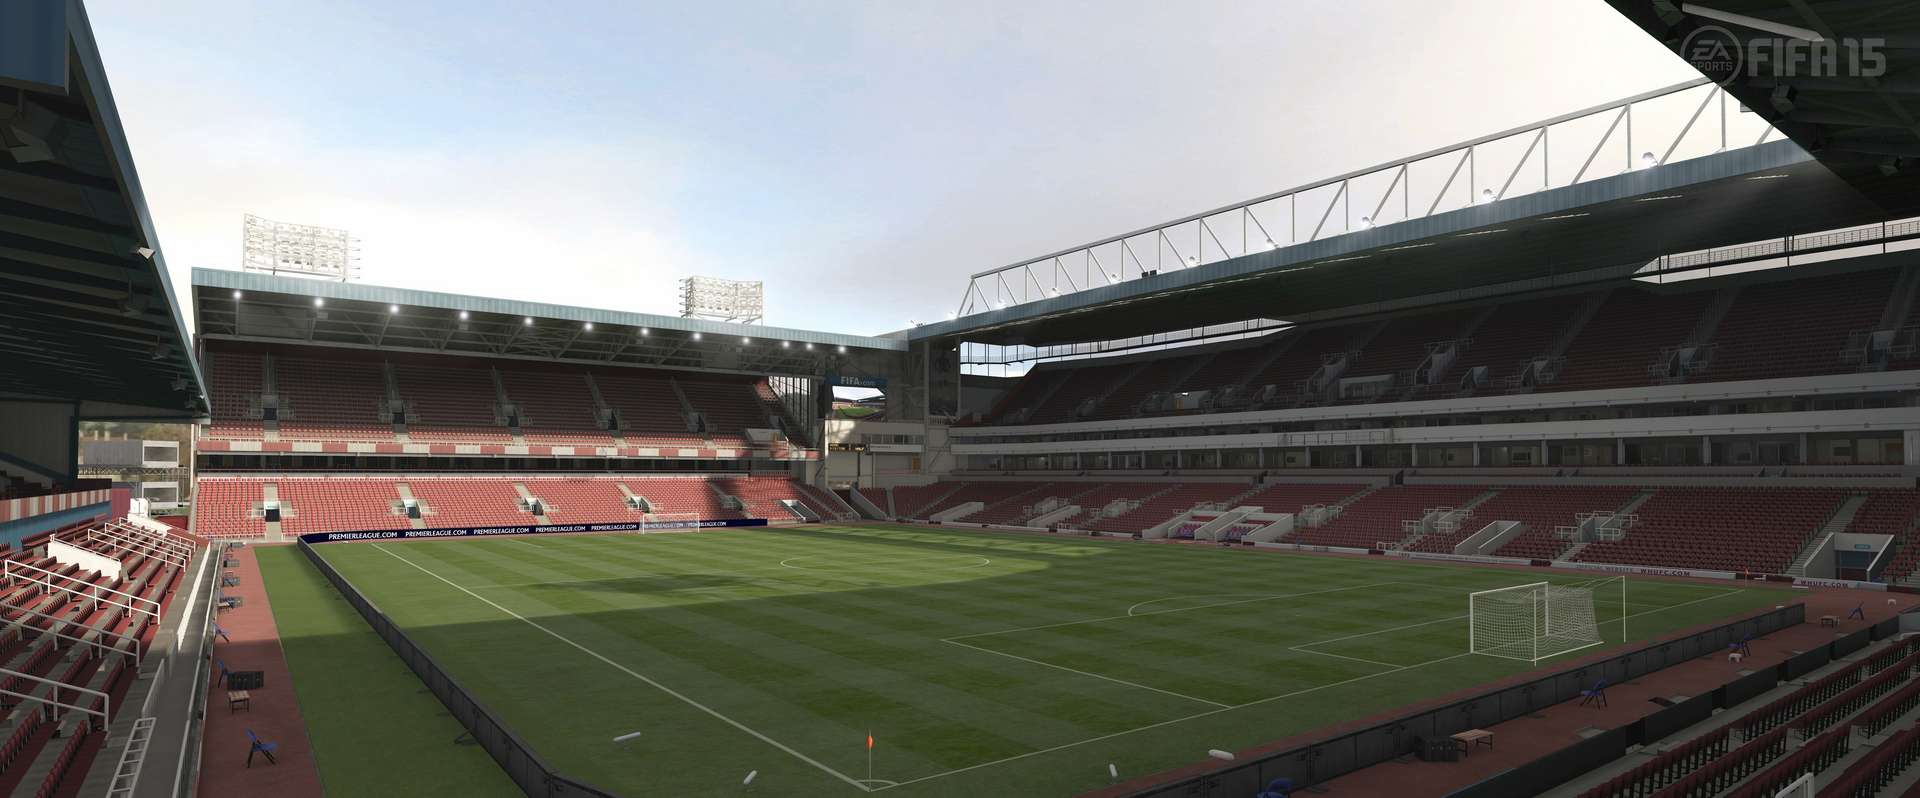 fifa-15-boleyn-ground-west-ham